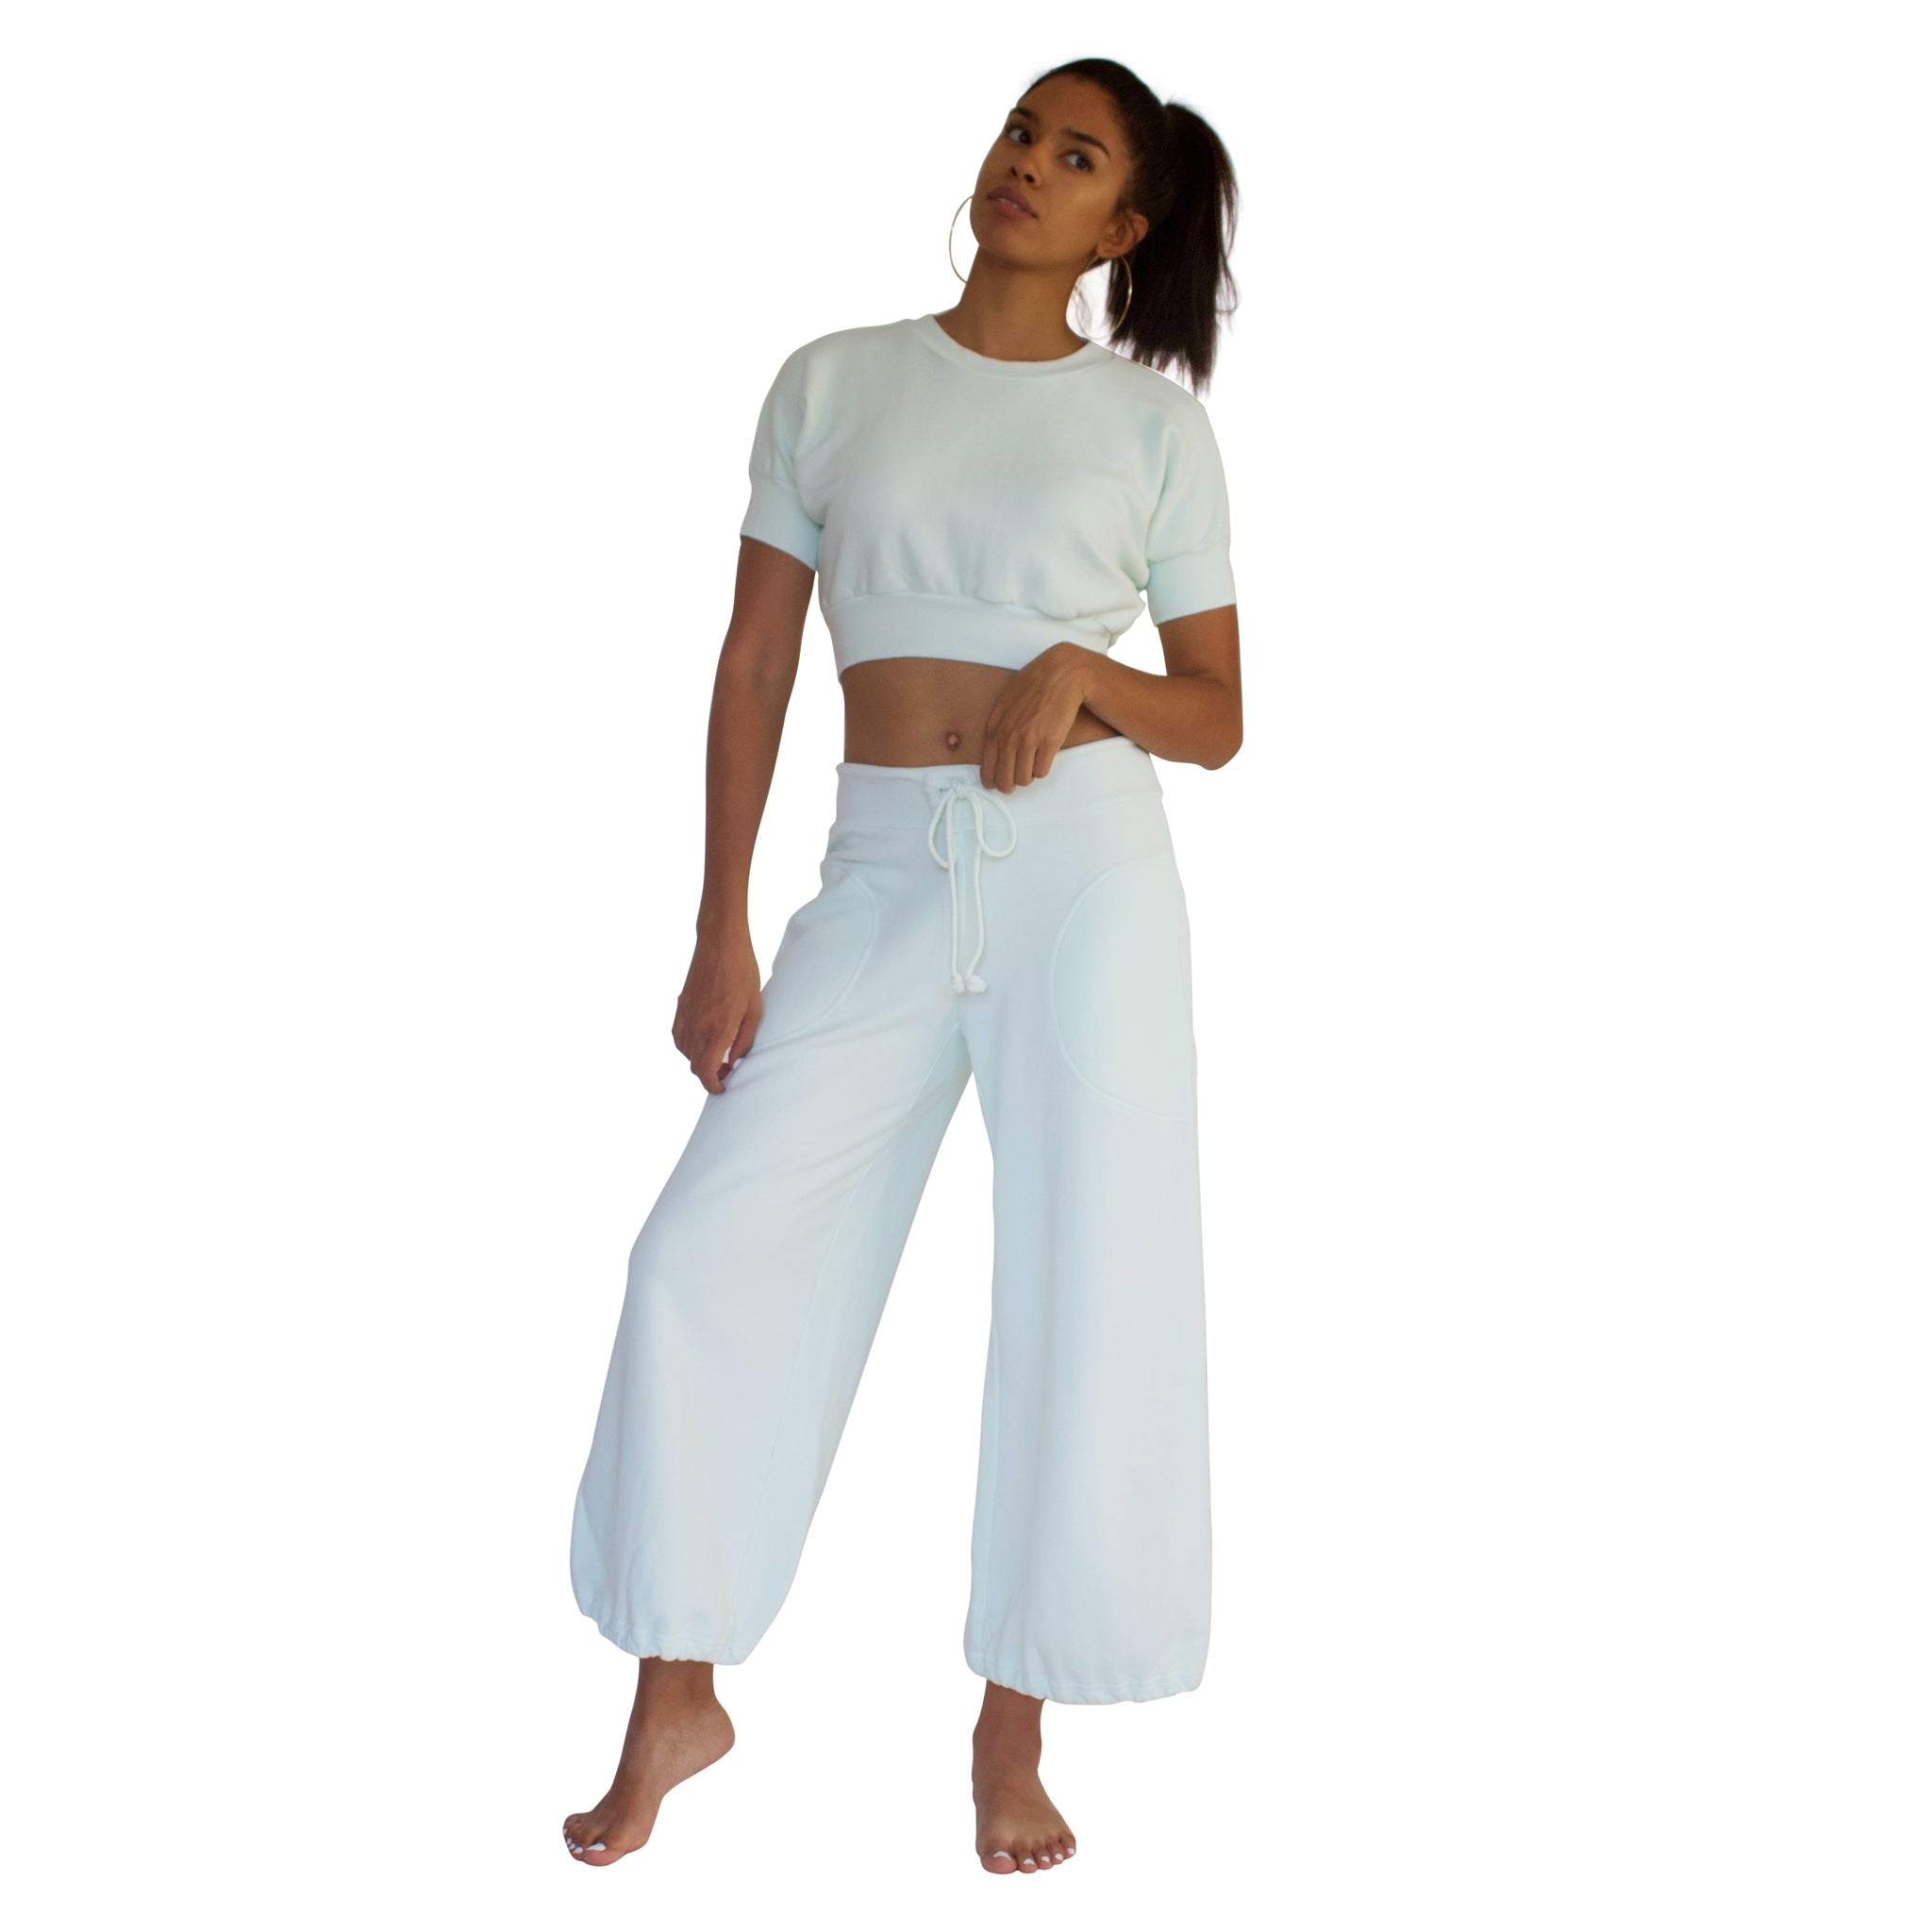 CC Beach Pant in 100% cotton French Terry will keep you comfy and cozy with roomy side seam pockets, drawstring waist, elasticized cuffs shown here in Mint Green.